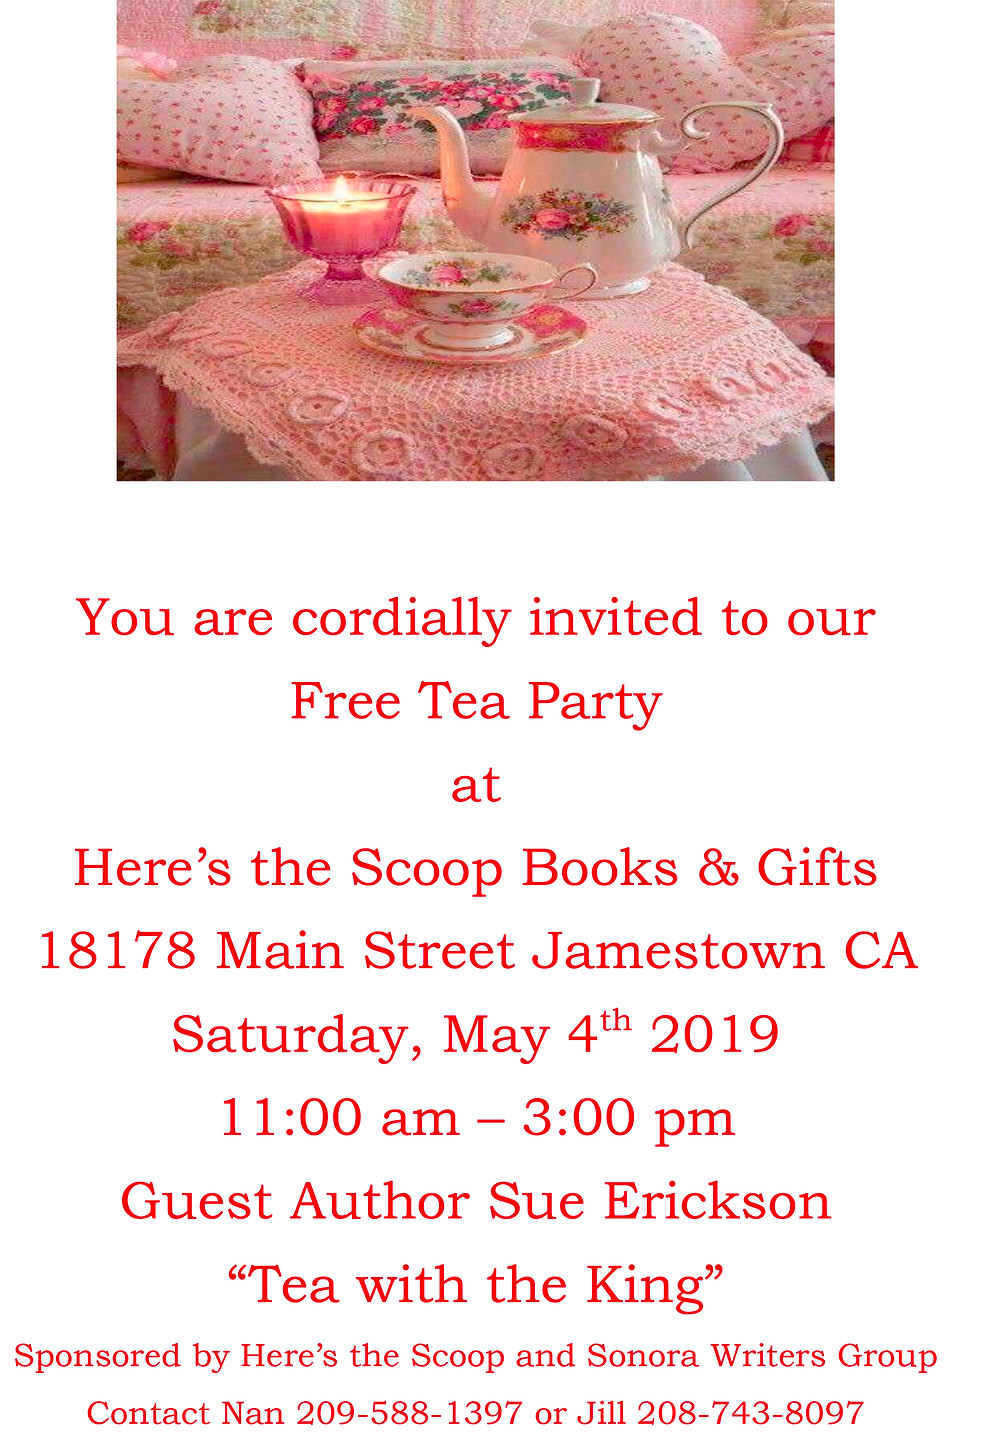 Everyone is invited Tea and deliouc crumpets and chocolate. And the Sonora Writers Group books will be available.